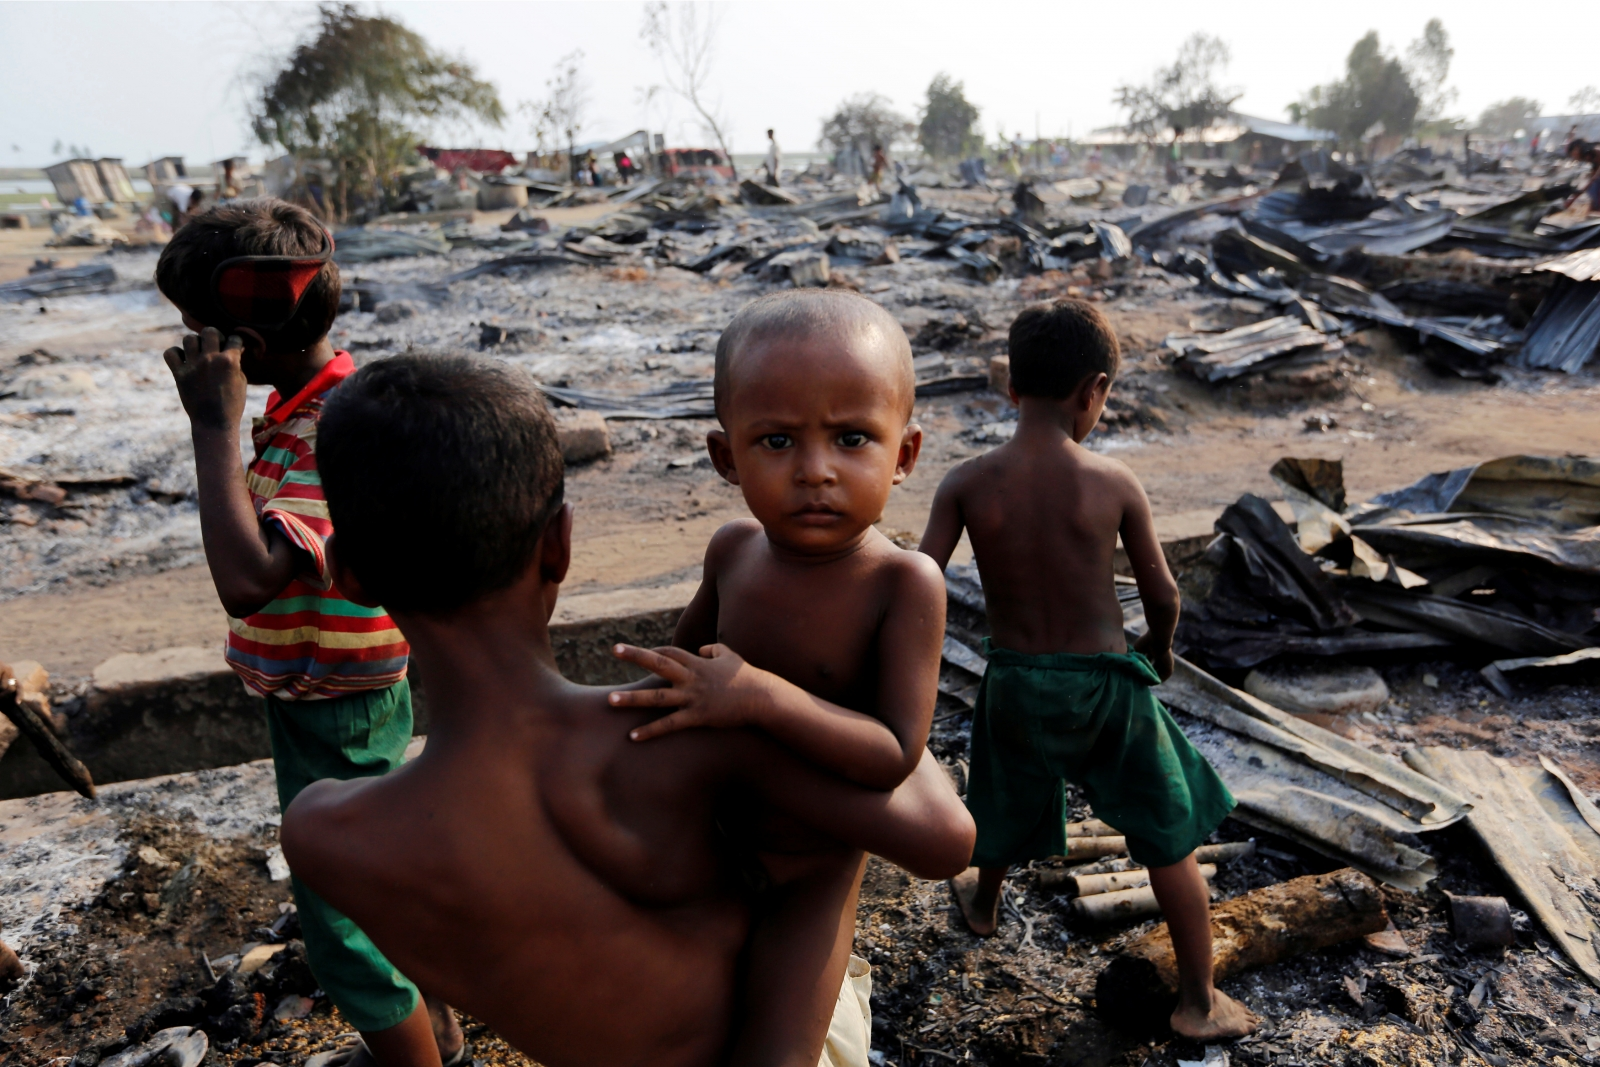 genocide and ethnic cleansing In this article ethnic cleansing, genocide, and international law history of ethnic cleansing: antecedents this article compares ethnic cleansing with genocide since the 1990s, ethnic cleansing has.